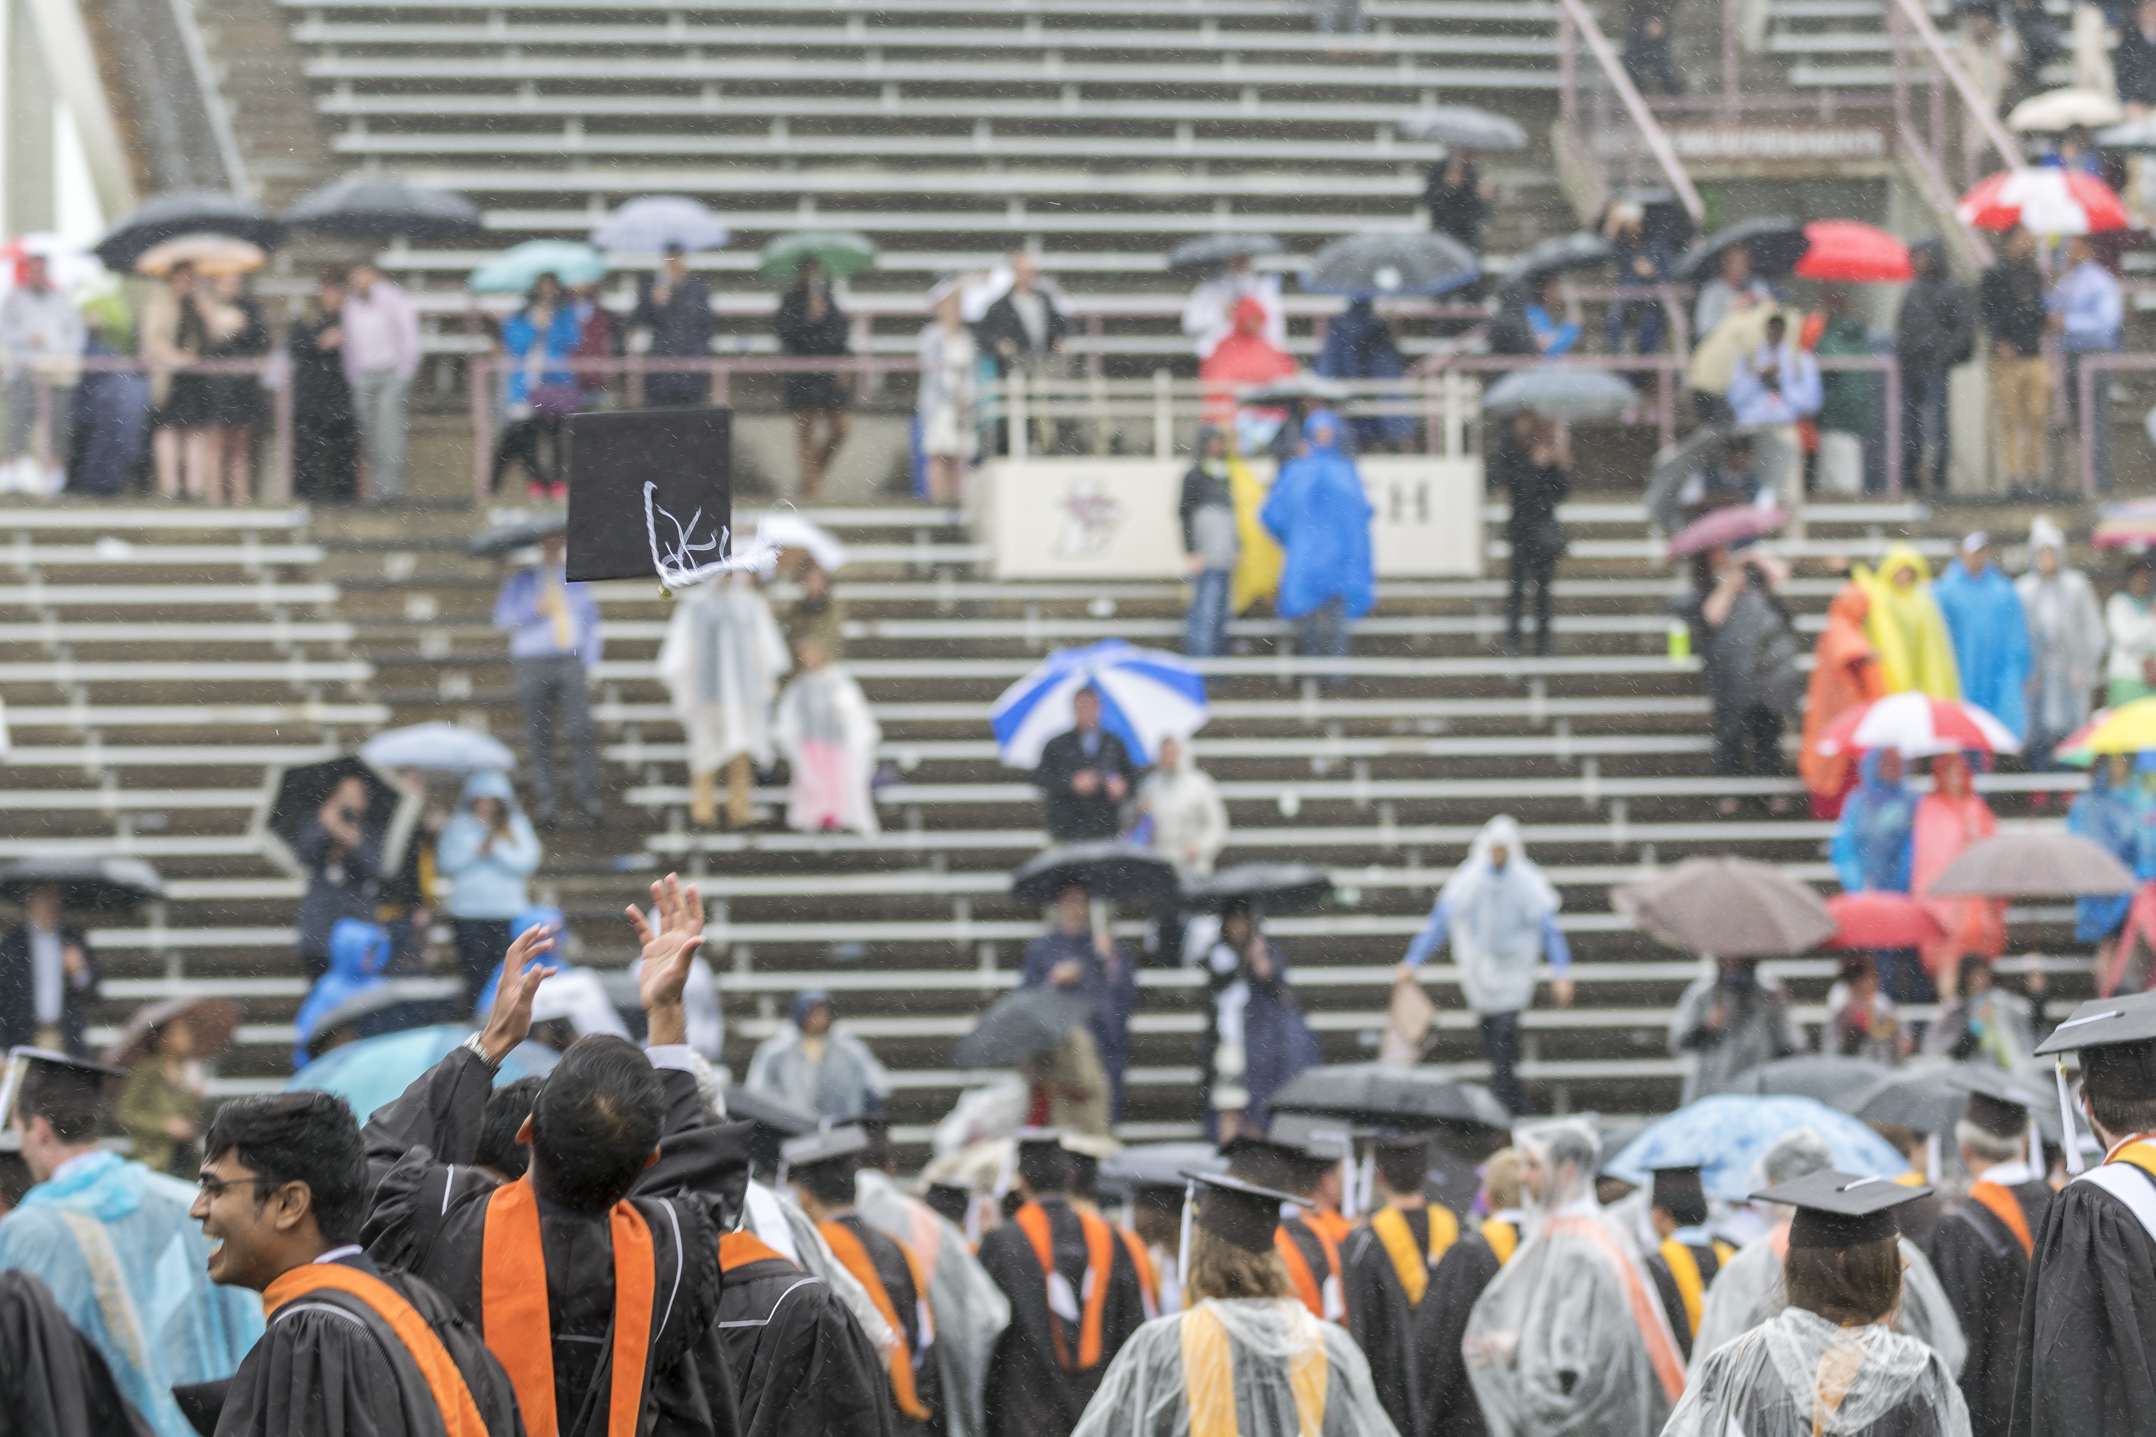 A student throws his cap in the air after commencement ends Monday, May 22, 2017, in Goodman Stadium. Many students decorated their caps to reflect their interests or honor their home countries. (Roshan Giyanani/B&W Staff)